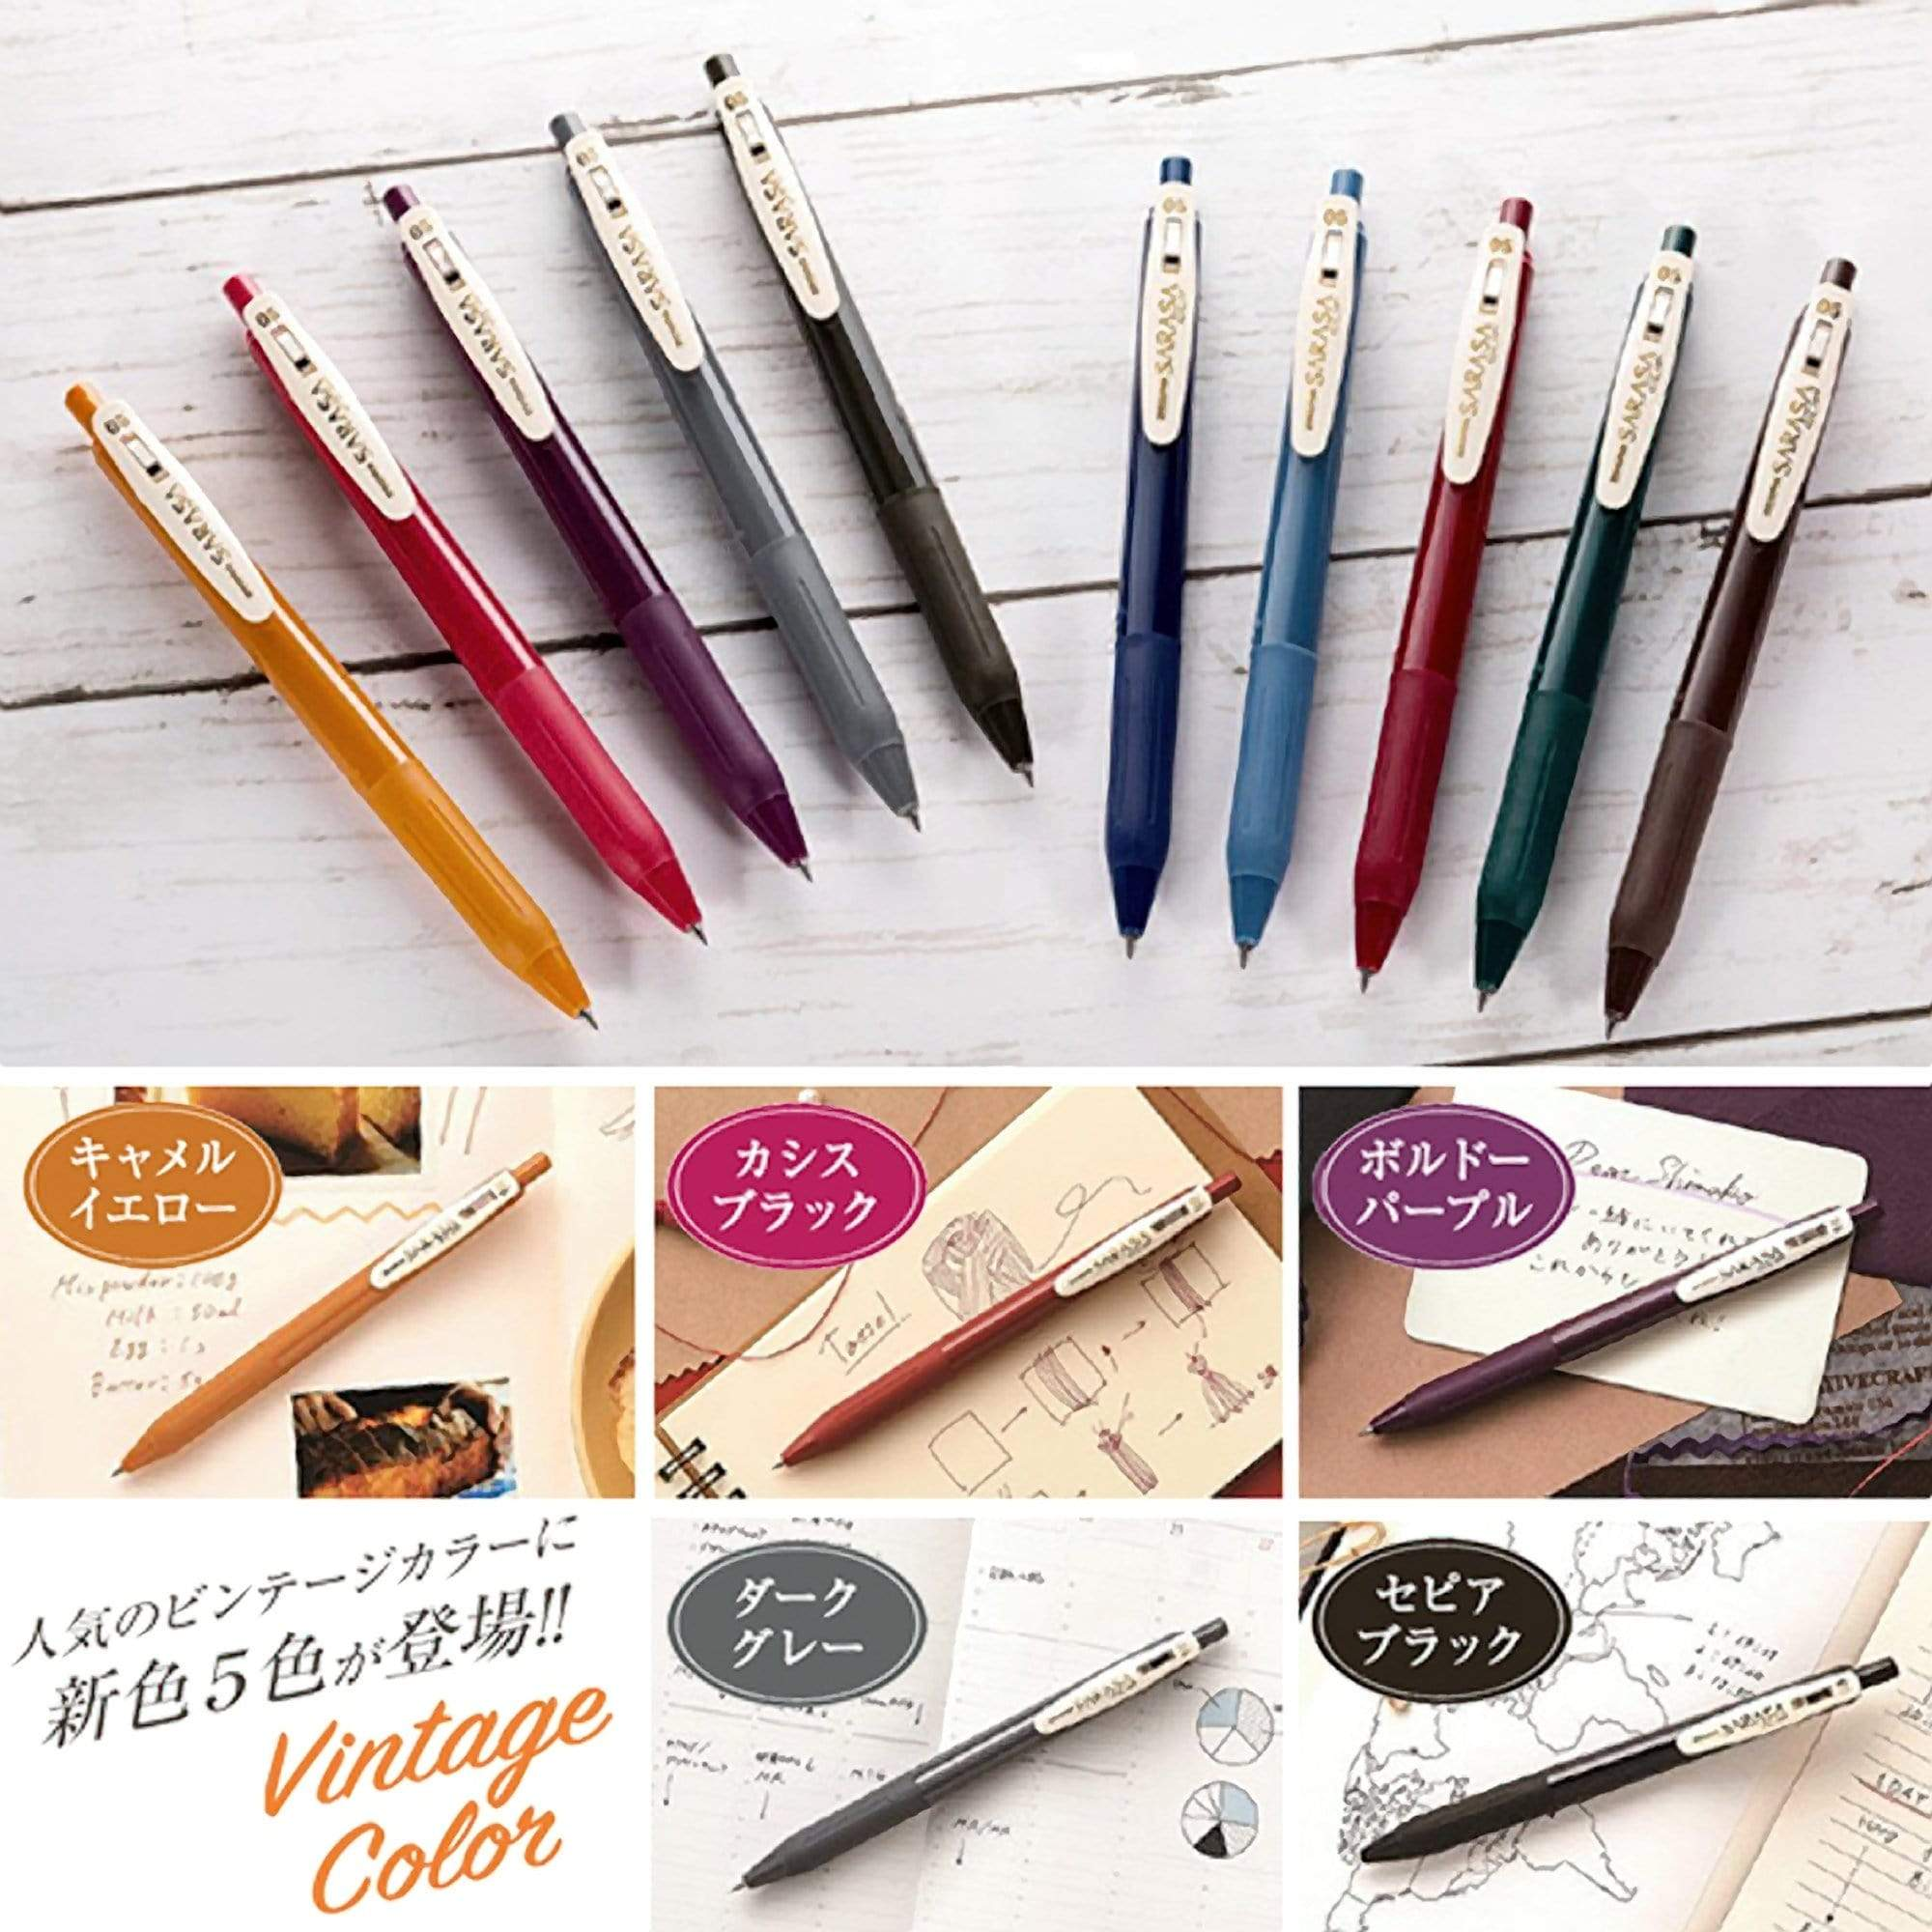 Zebra Sarasa VINTAGE 0.5mm Push Clip Gel Pen - ALL Colors! - The Stationery Life!